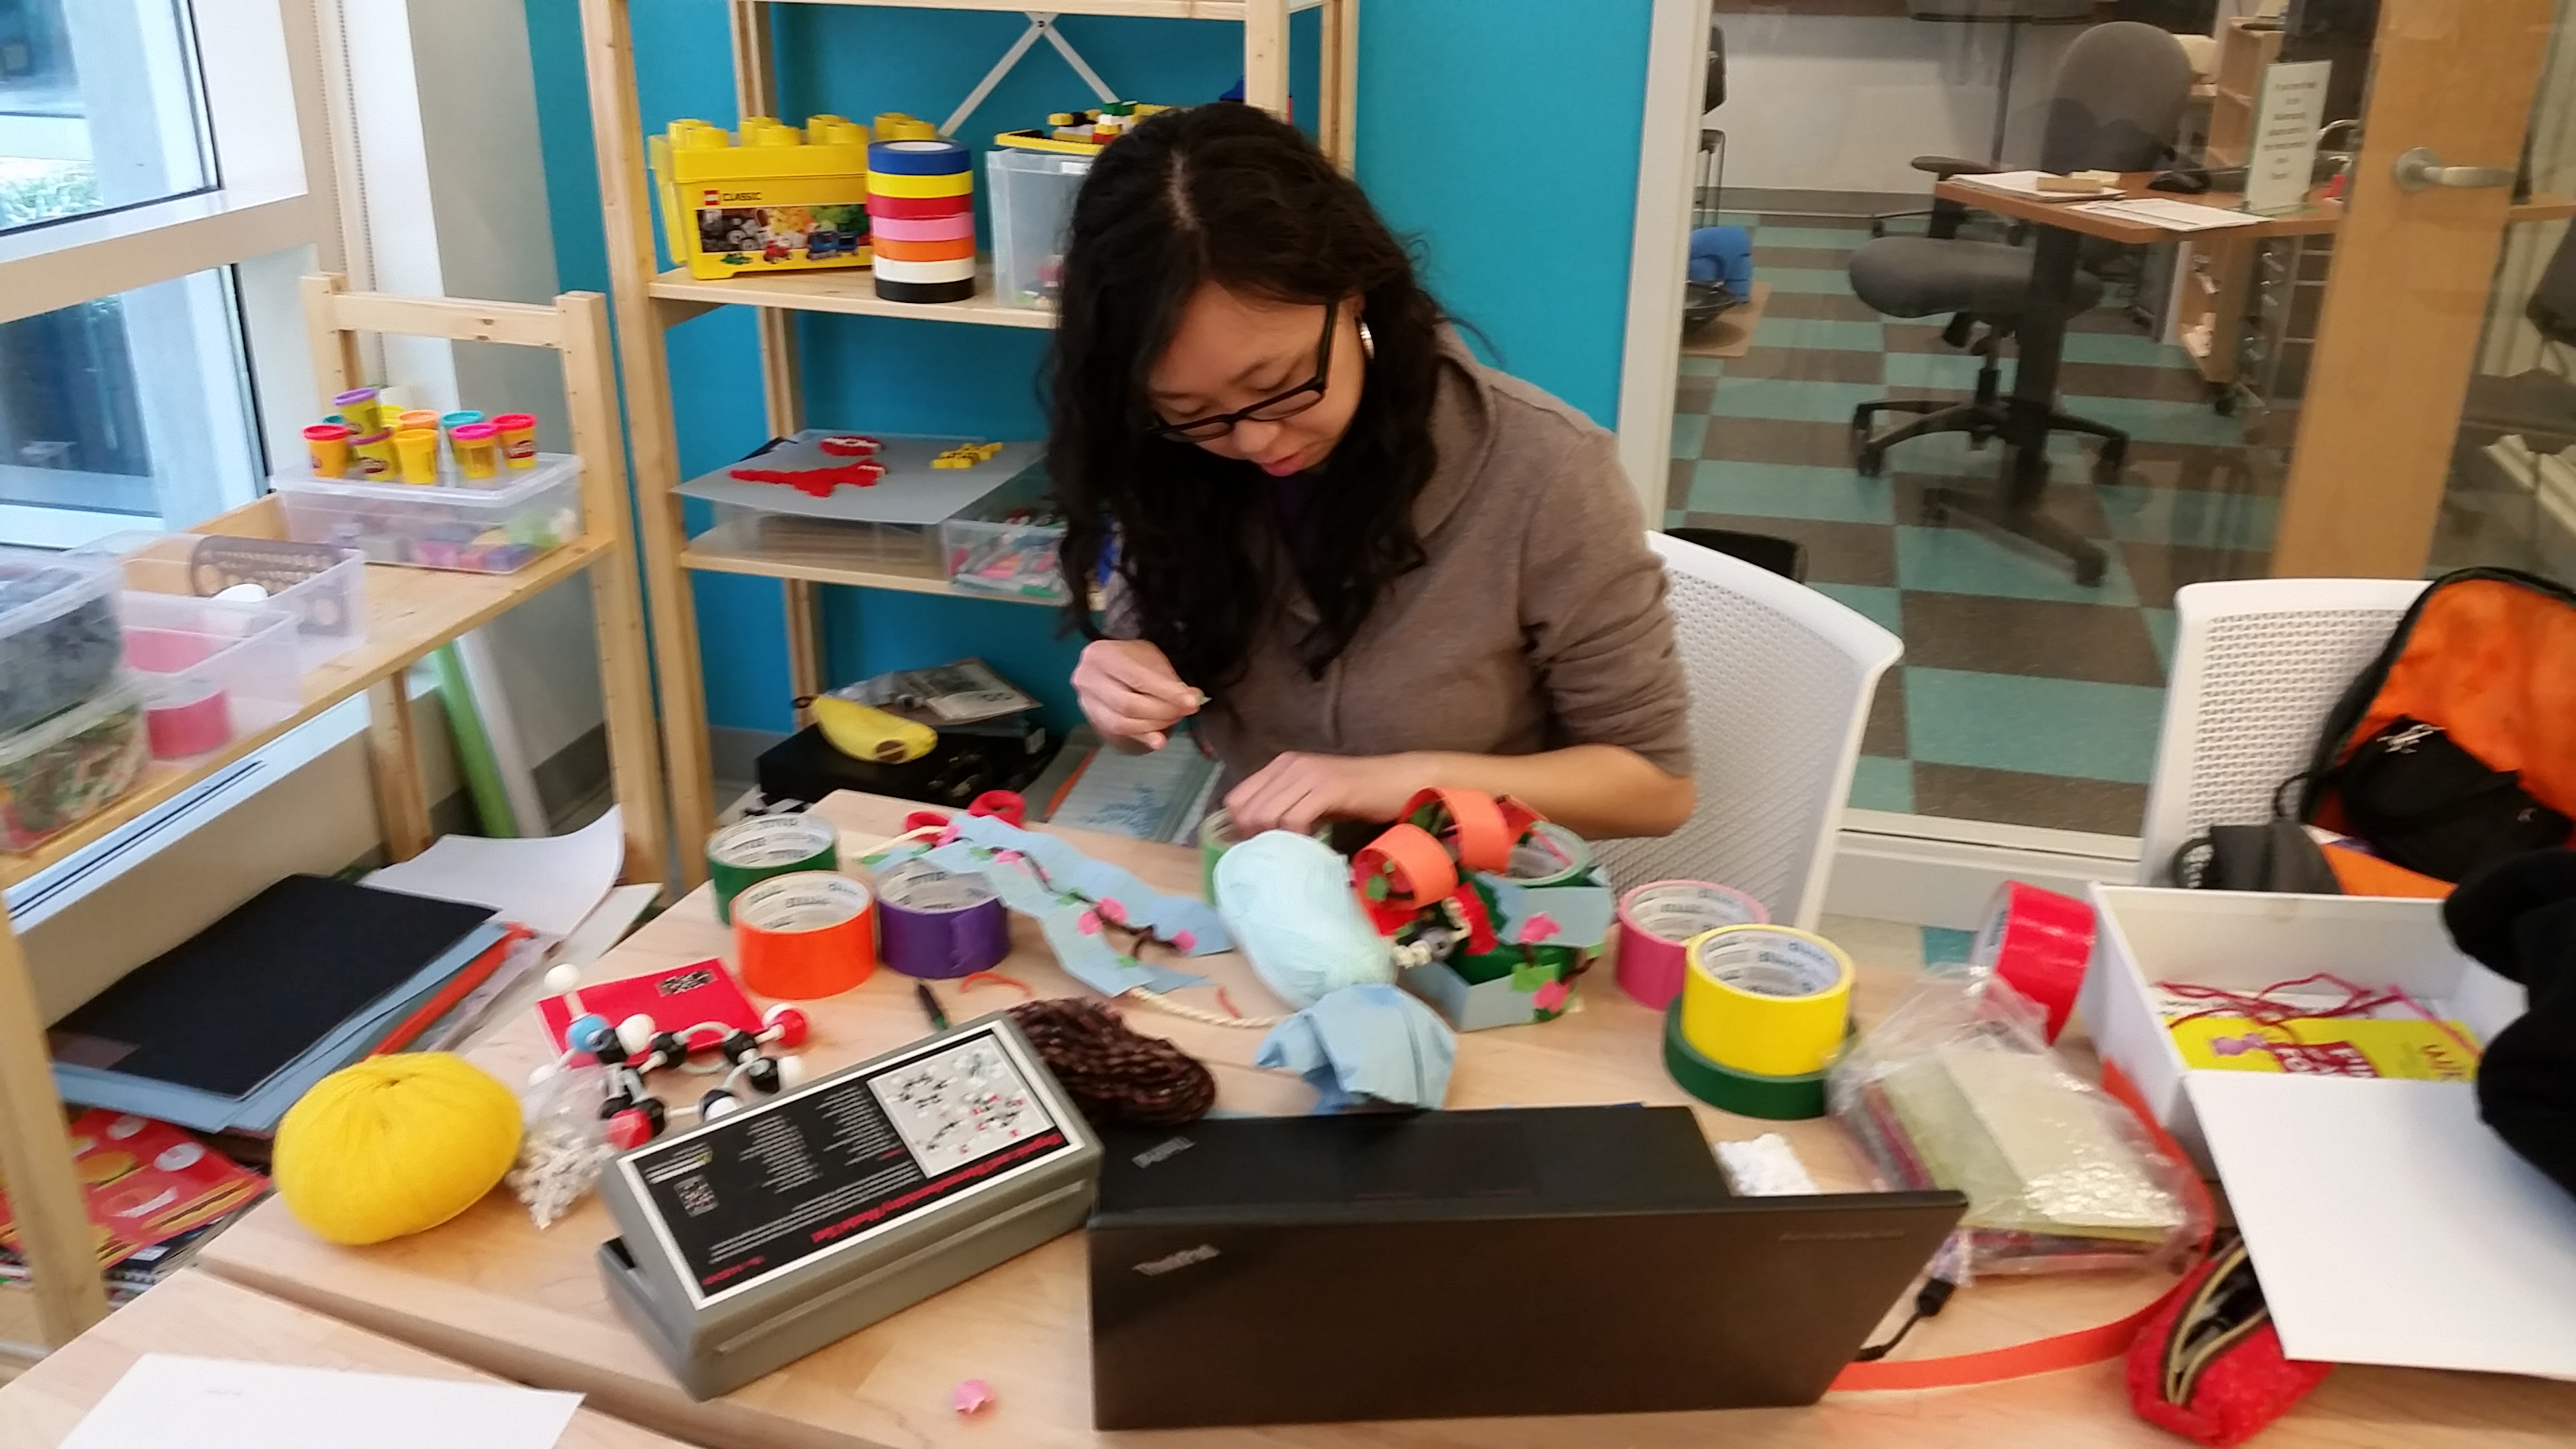 a student working on a craft project at a table